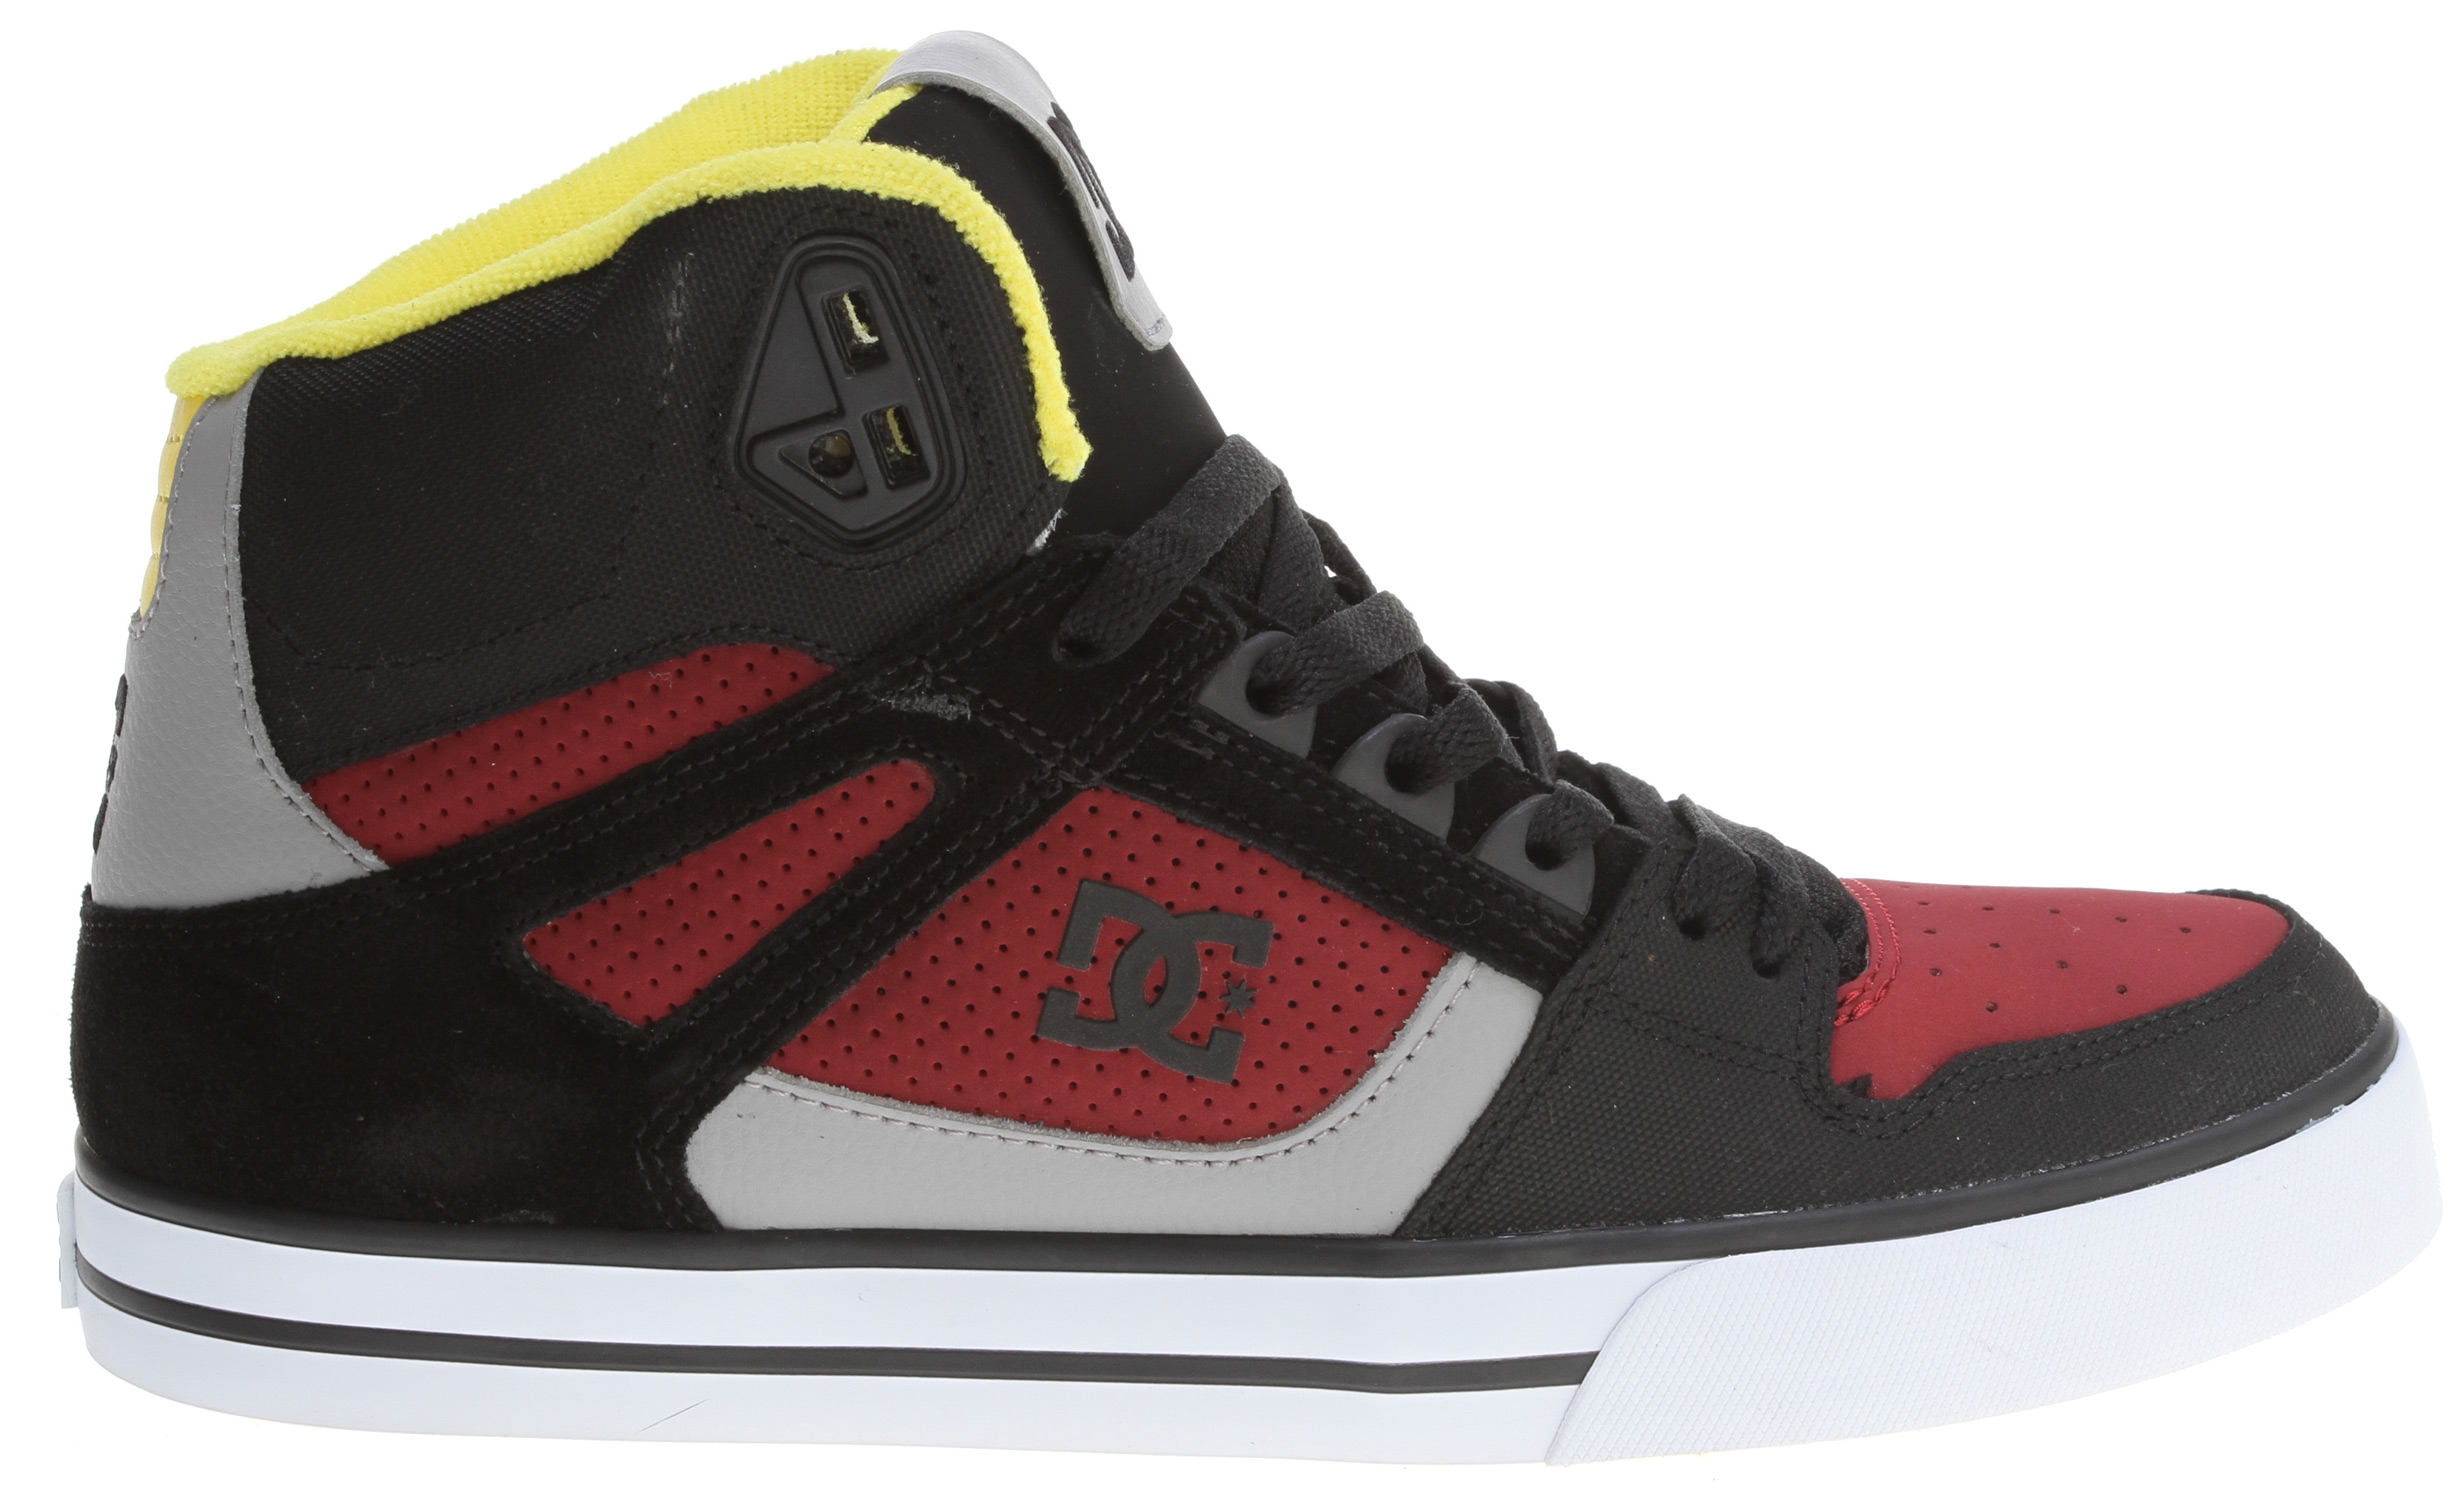 "Skateboard Hi tops aren't for everyone, it either makes your day or gets in your way. But consider a lightweight shoe, foam padded tongue and collar for comfort, and a wrap cup sole for extra protection. Throw in a sweet style and high tops might just be the way. Follow the Spartan rabbit.Key Features of the DC Spartan HI WC Skate Shoes: Foam Padded Tongue And Collar For Added Comfort And Support Vent Holes In Upper For Breathability TPU Eyelets Performance Rubber Wrap Cup Sole, Our Exclusive Construction Technique Abrasion-Resistant Sticky Rubber Outsole With DC's Trademarked ""Pill Pattern"" Bottom. - $47.95"